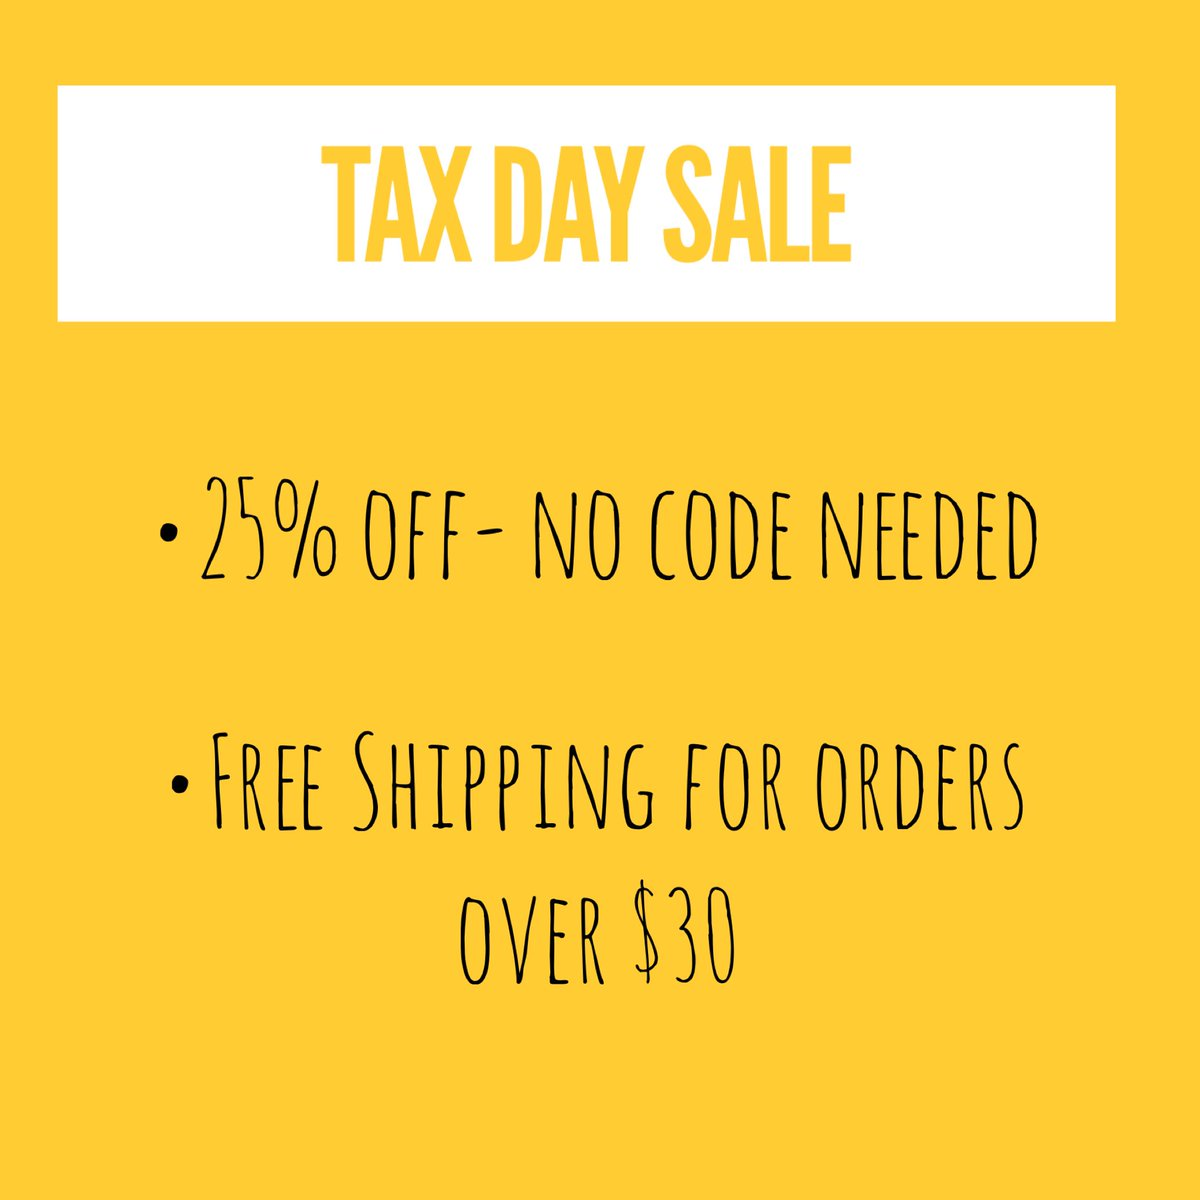 Tax Day Sale is on and poppin.   http://www. prettyshenanigans1.etsy.com  &nbsp;    #TaxDay #taxdaysale #prettyshenanigans #blacketsyshop #blackowned #phonecases #journals #compactmirrors<br>http://pic.twitter.com/6QrneKSqVE